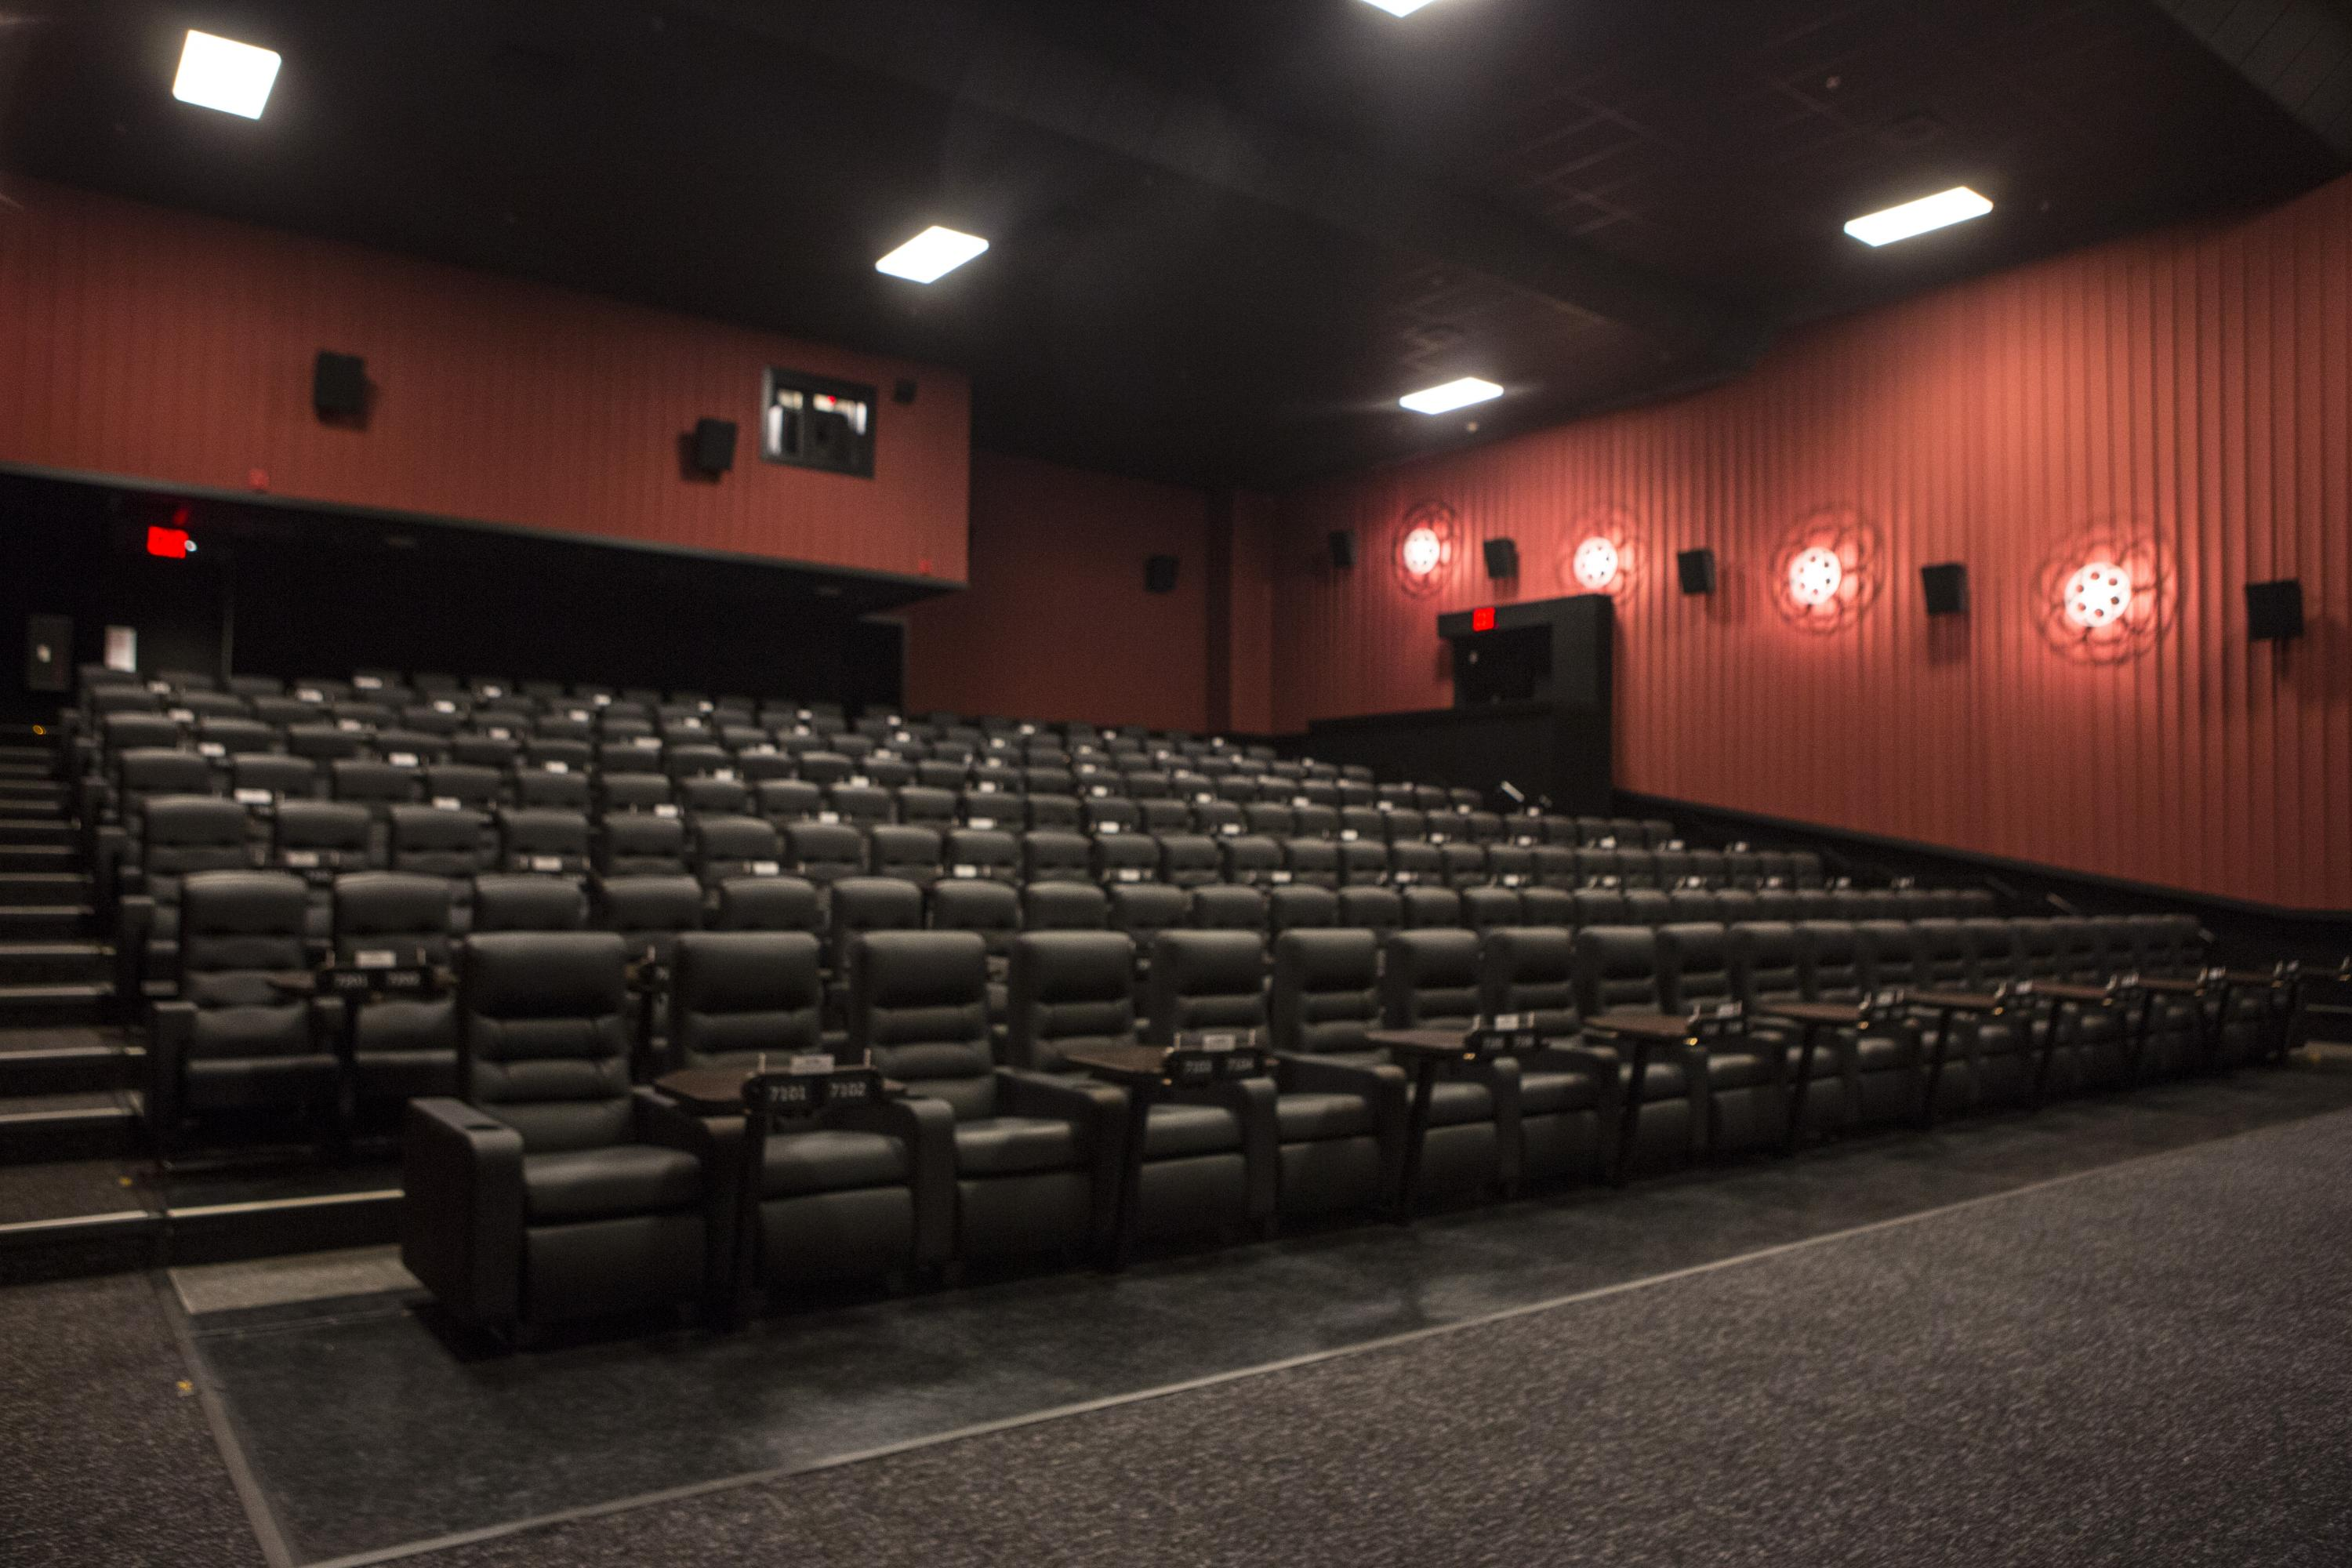 Traditional Alamo Drafthouse Ater Chain Opens New York City Multiplexin Downtown Brooklyn Alamo Drafthouse Ater Chain Opens New York City Alamo Drafthouse Cinema Downtown Brooklyn curbed Alamo Drafthouse Cinema  Downtown Brooklyn